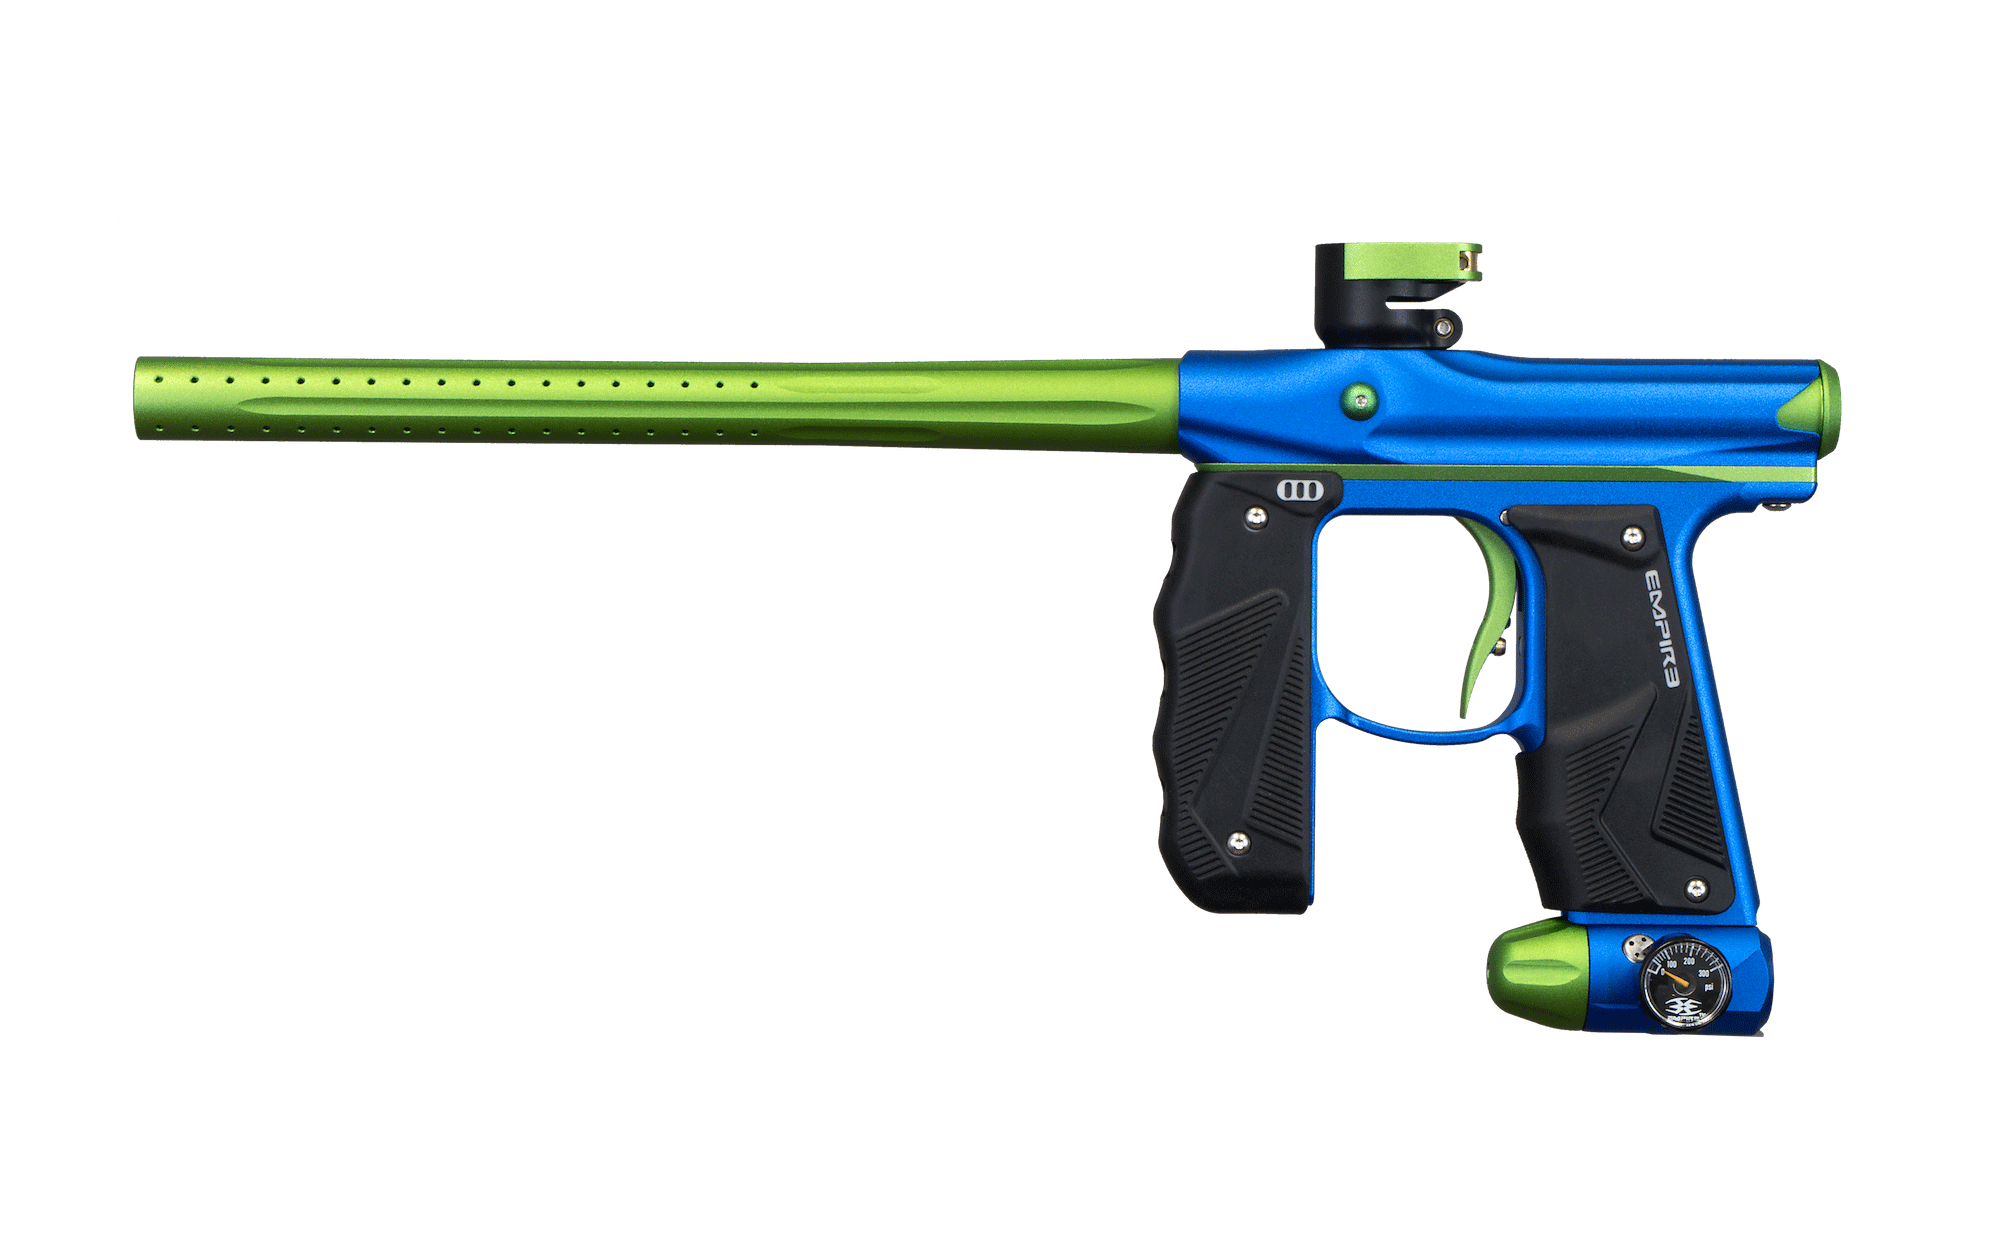 Green and blue color paintball gun